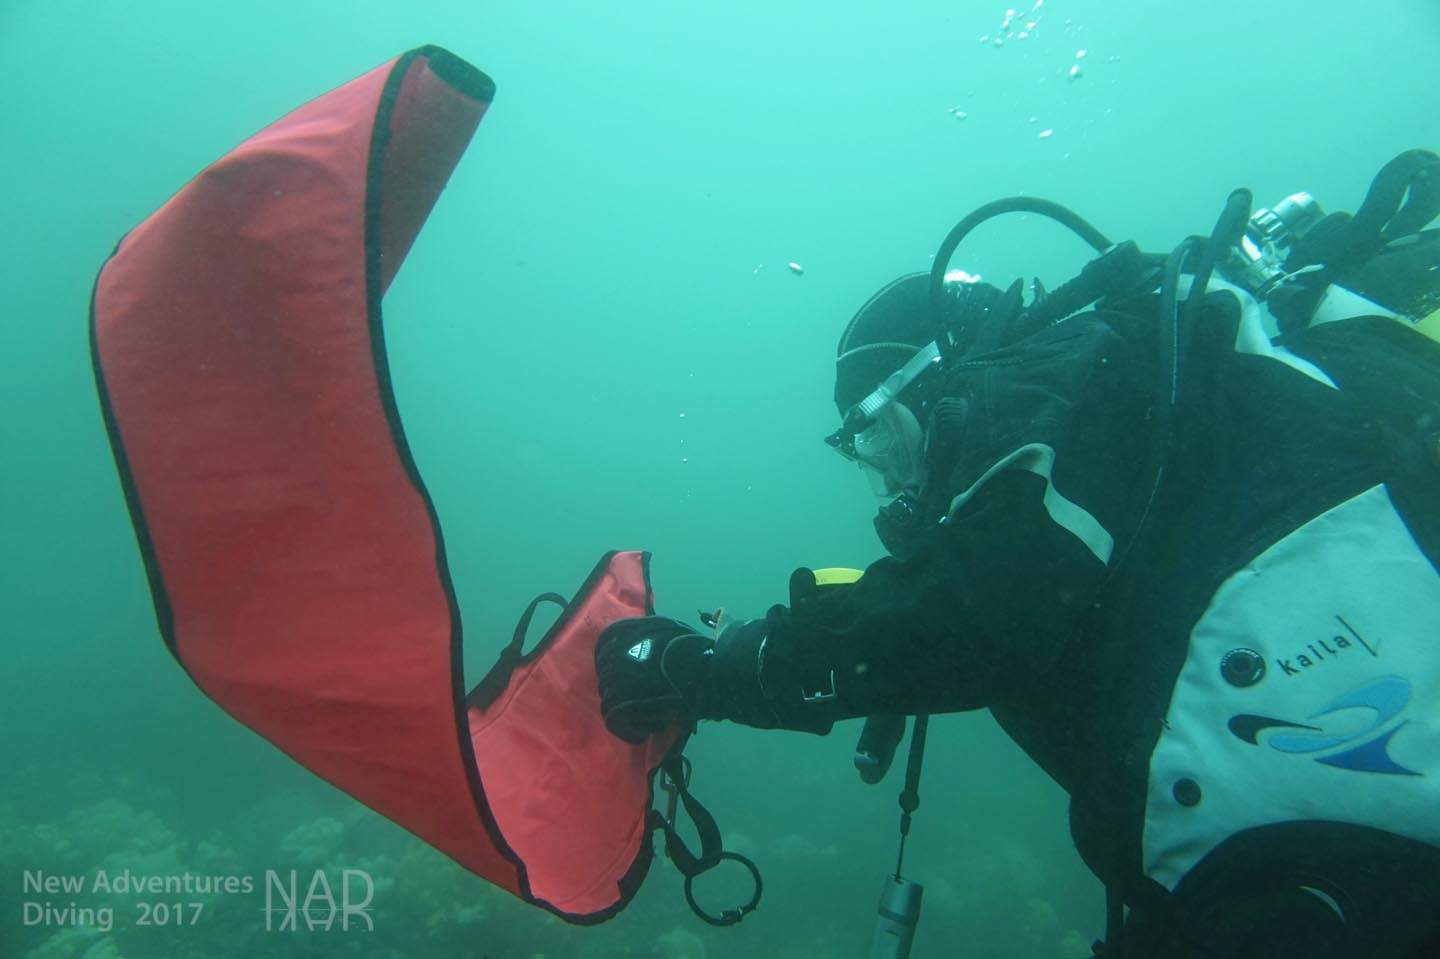 Advanced Open Water Aow Training In The North West With New